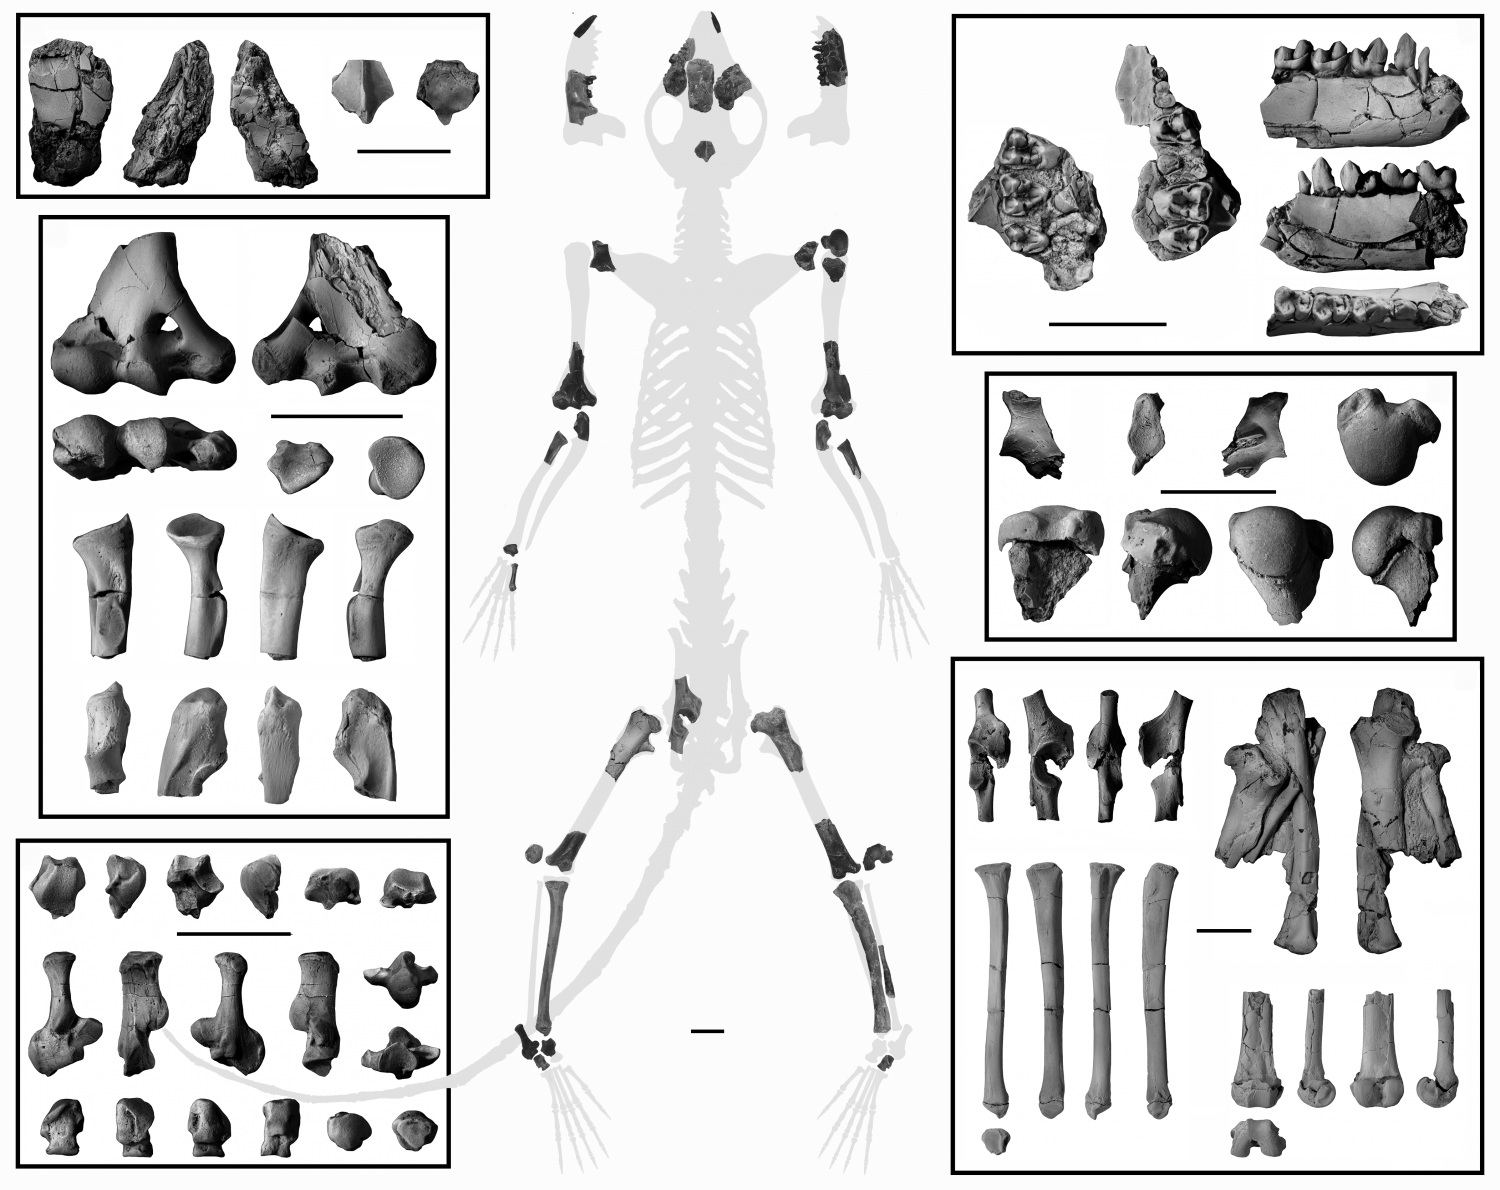 Fossil skeleton confirms earliest primates were tree